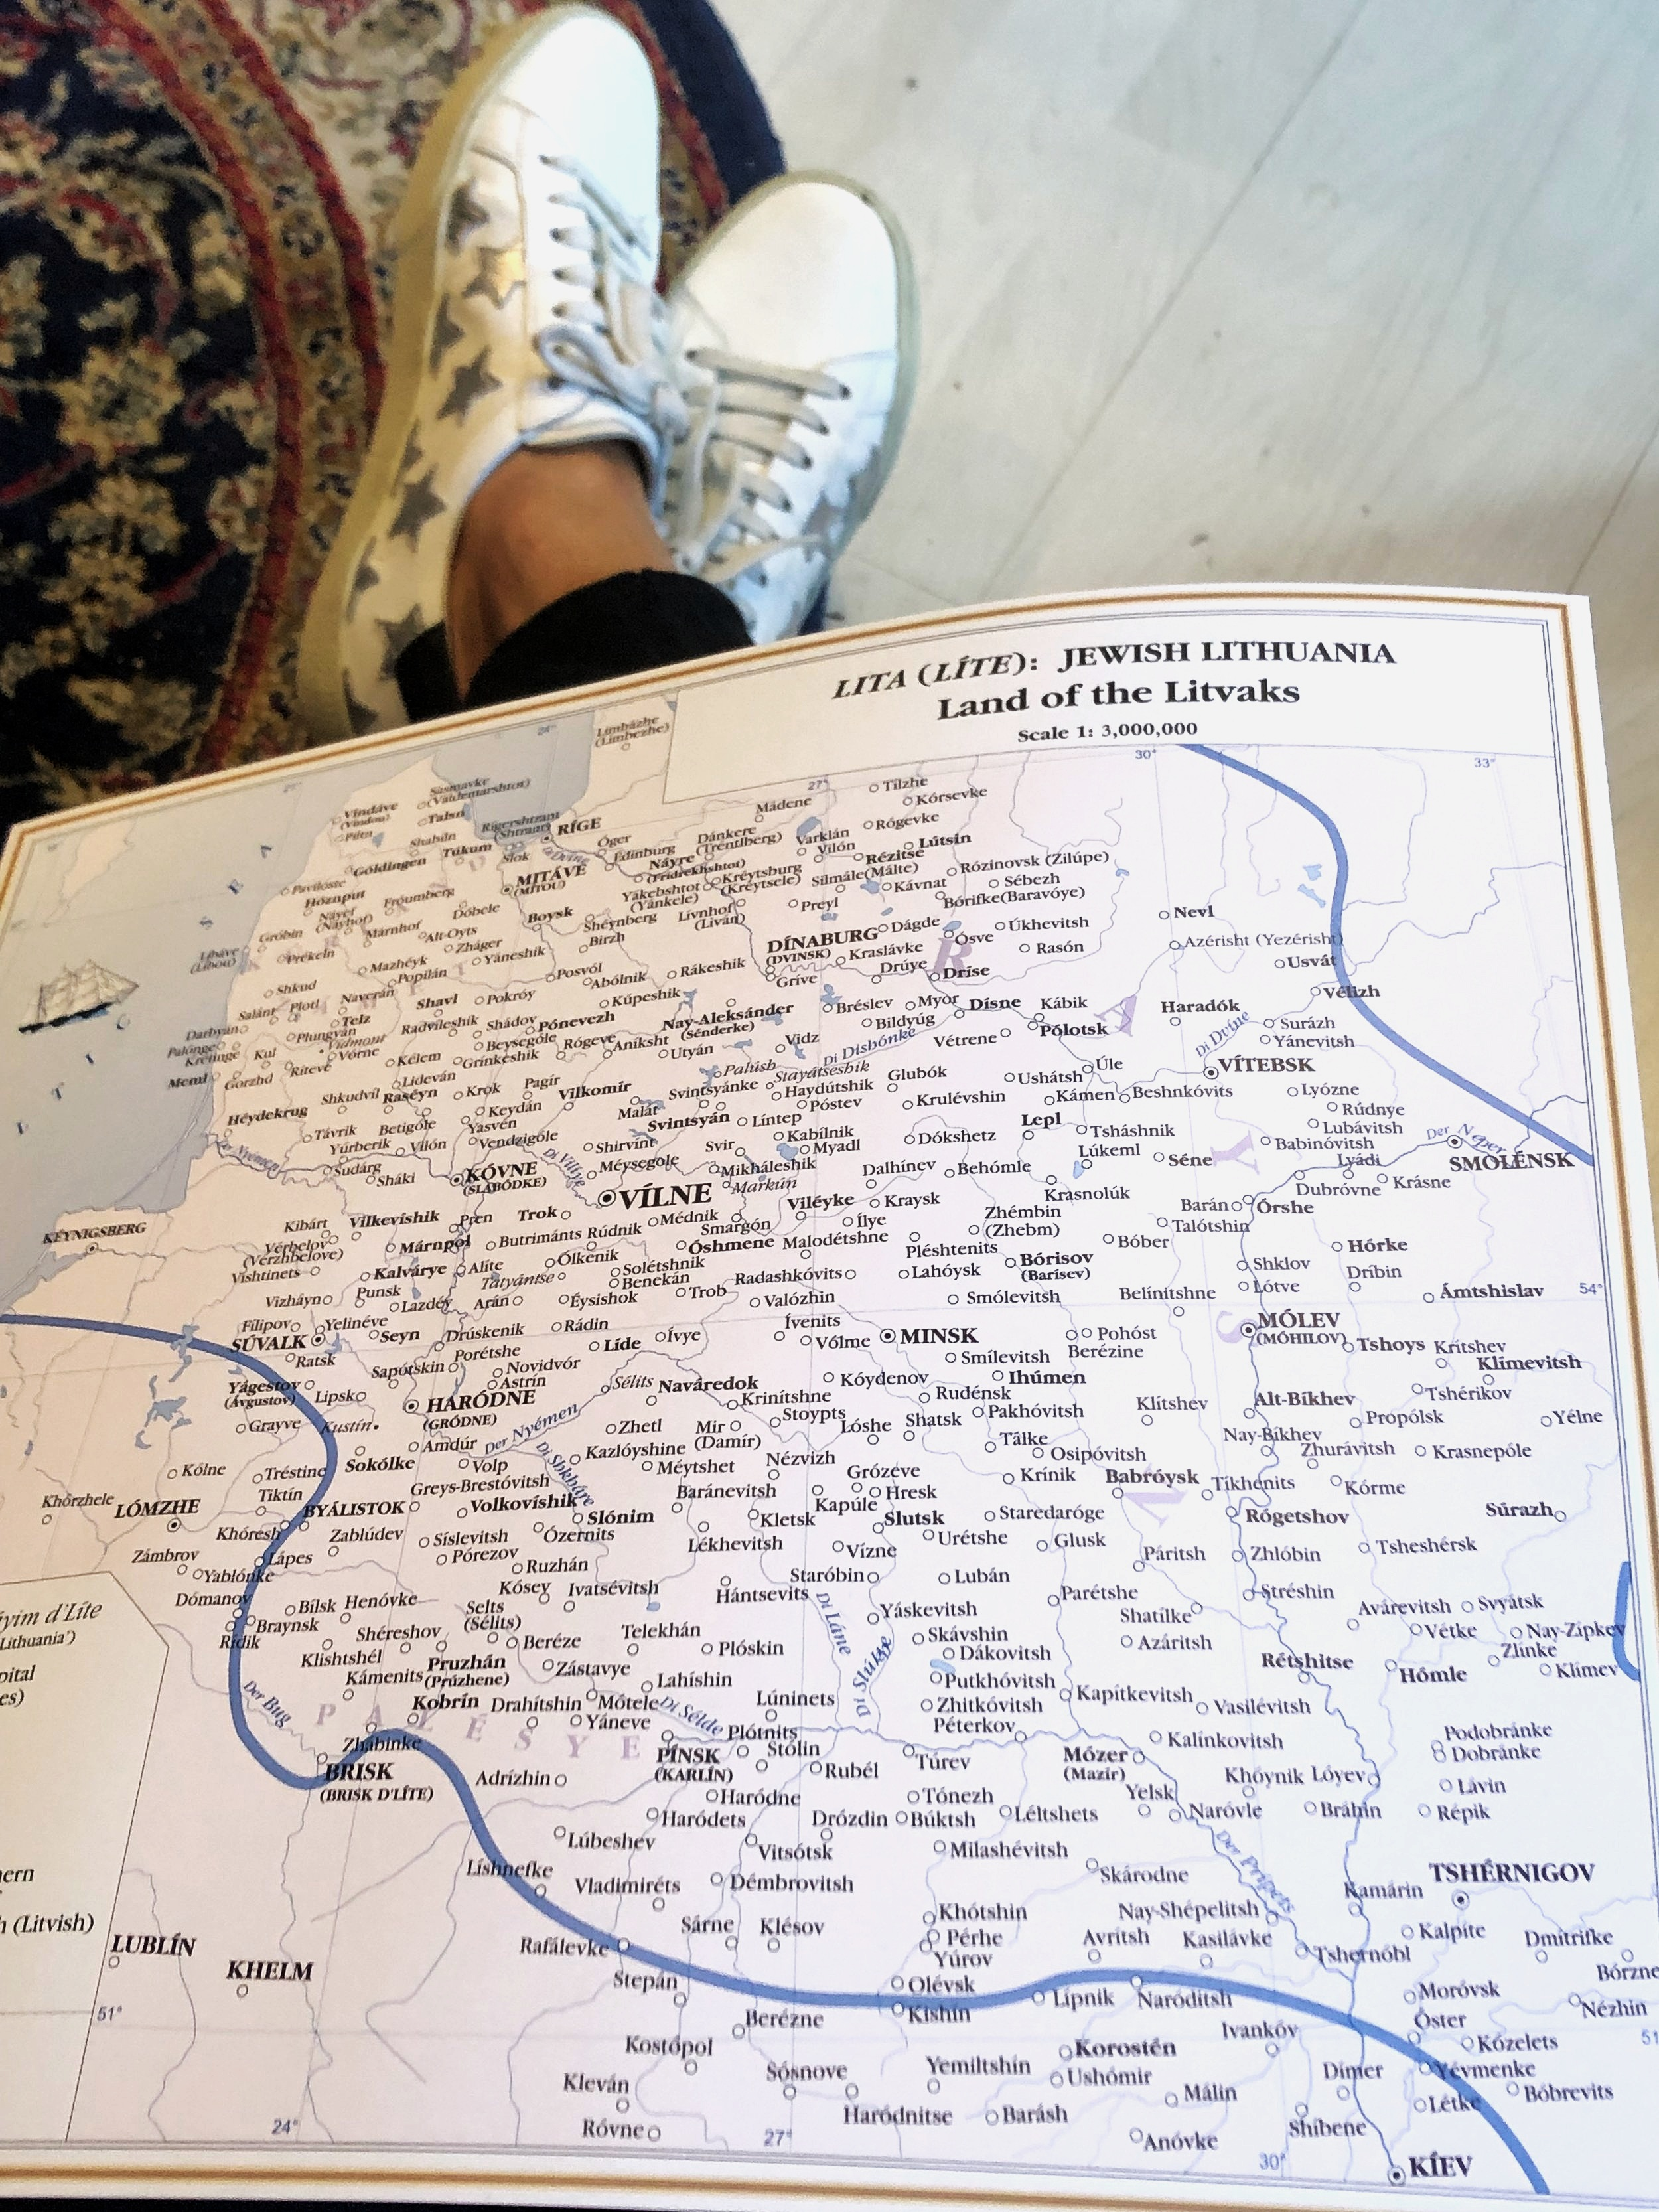 Here is another shot of those    fab sneakers    peeking out from under a map of Jewish Lithuania.  A staggering 70,000 Jews were murdered in the Paneraia Forest near Vilnius. Their bodies were dumped into 12 different pits and burned.